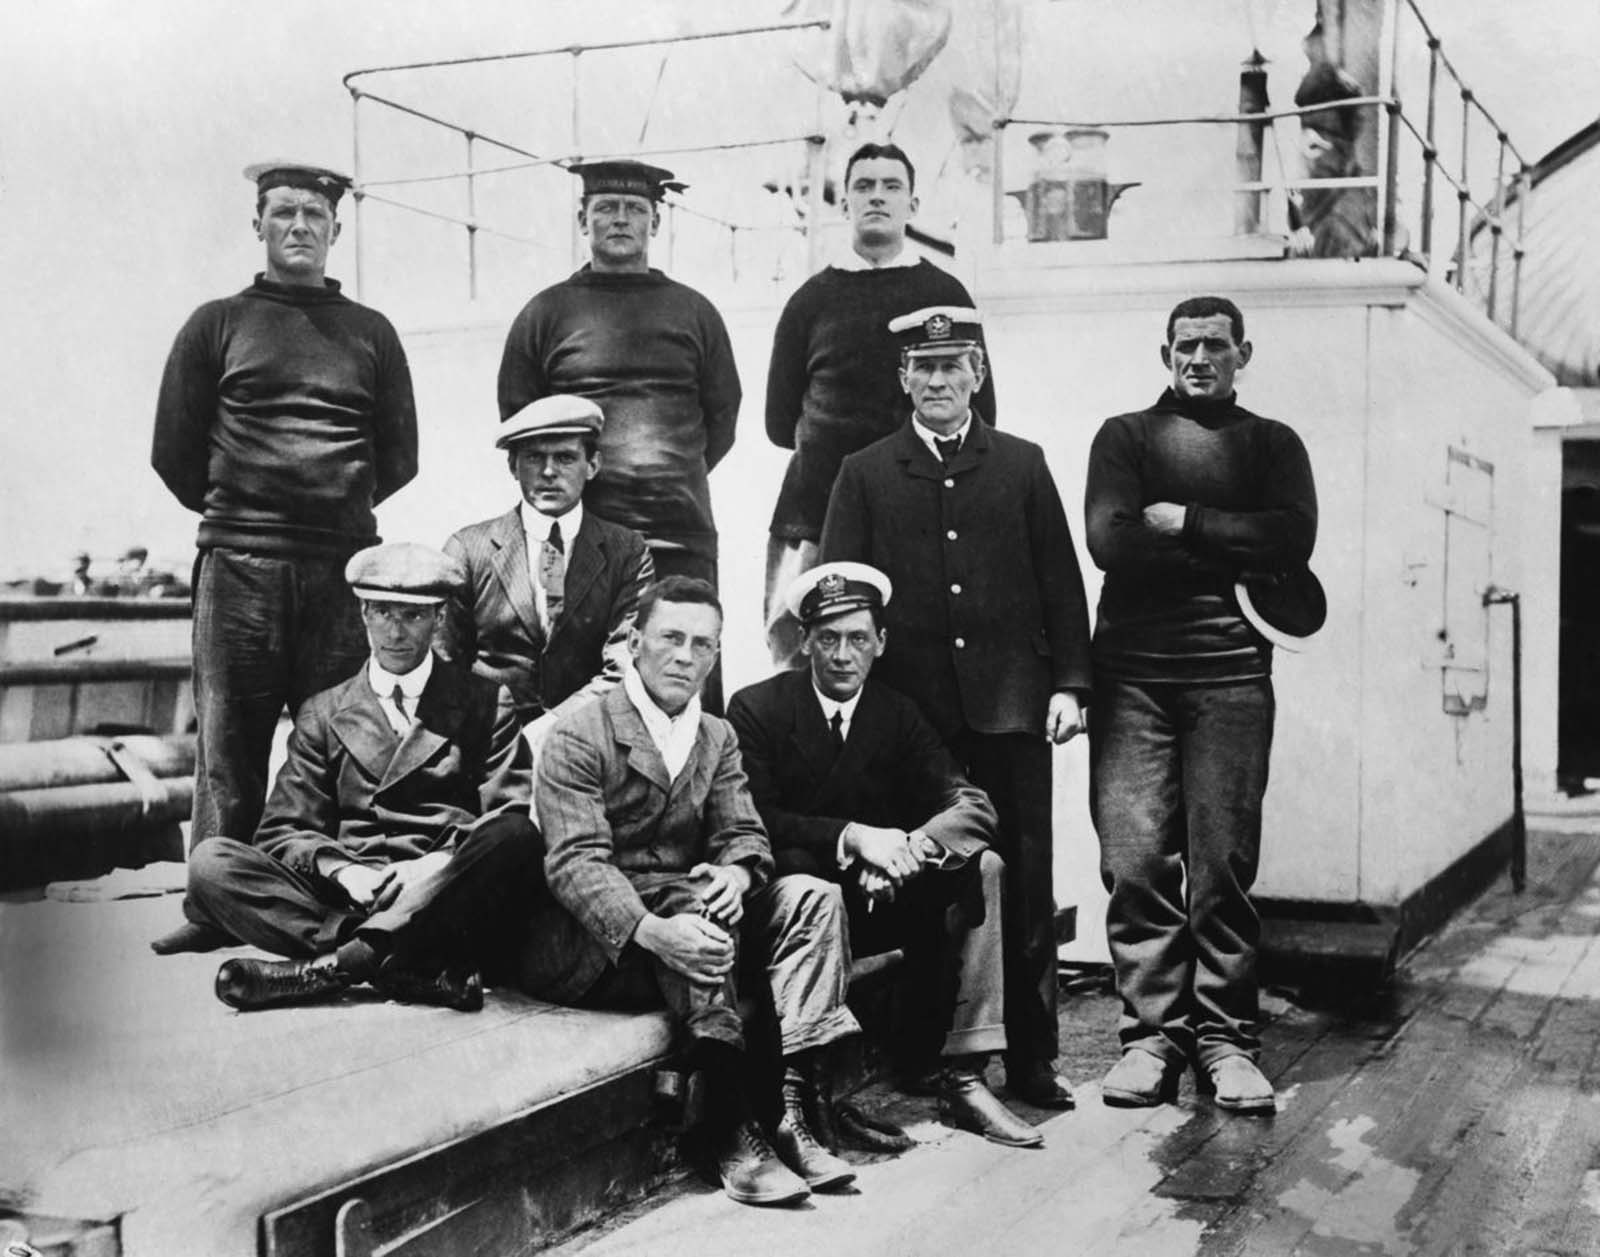 Expedition members return to New Zealand on the Terra Nova after finding the bodies of Scott and the other victims. January, 1913.